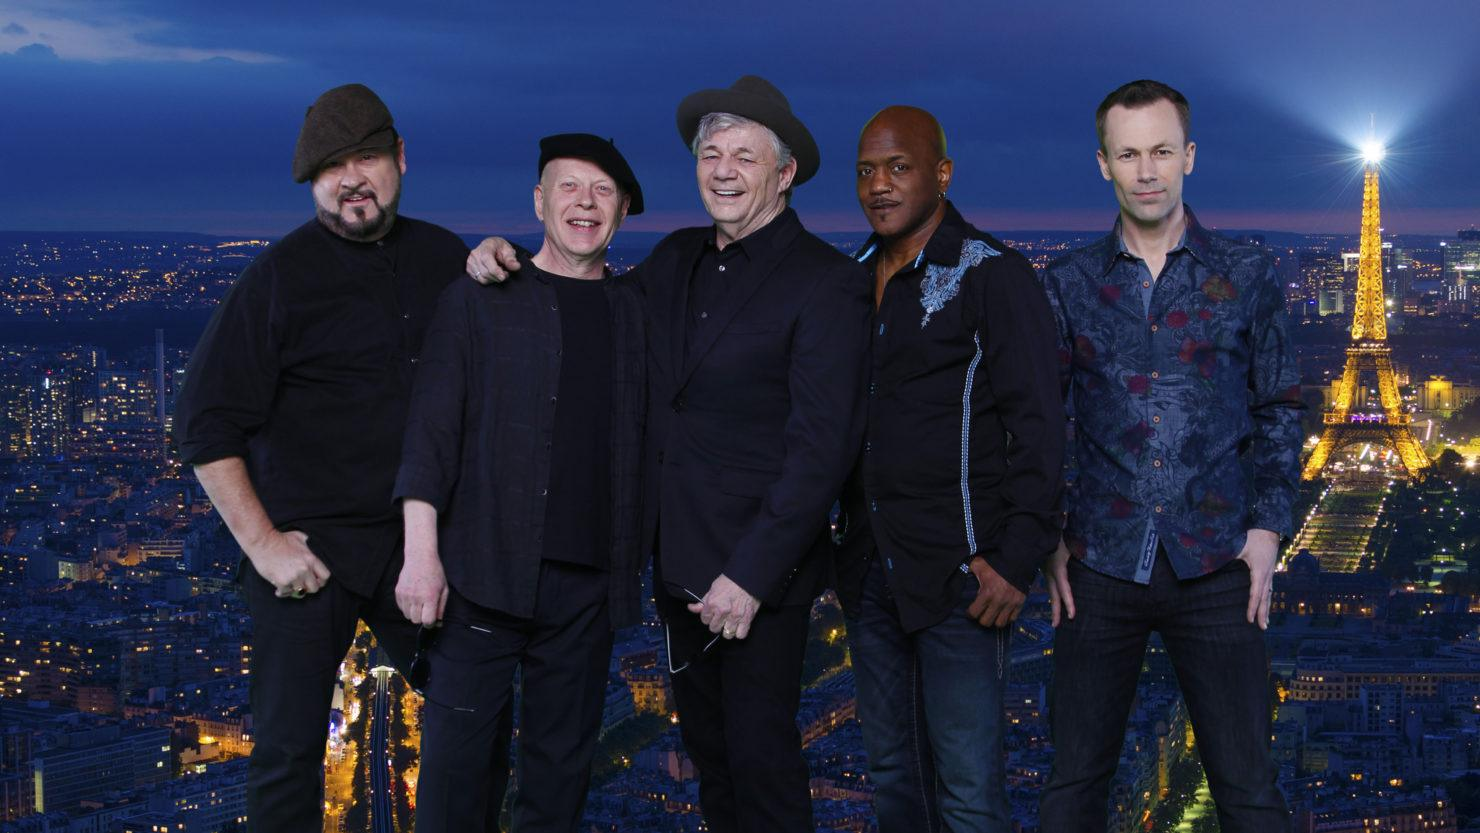 Steve Miller Band Tour 2020.Steve Miller Band At Ip Casino Resort And Spa Feb 15 2020 Biloxi Ms